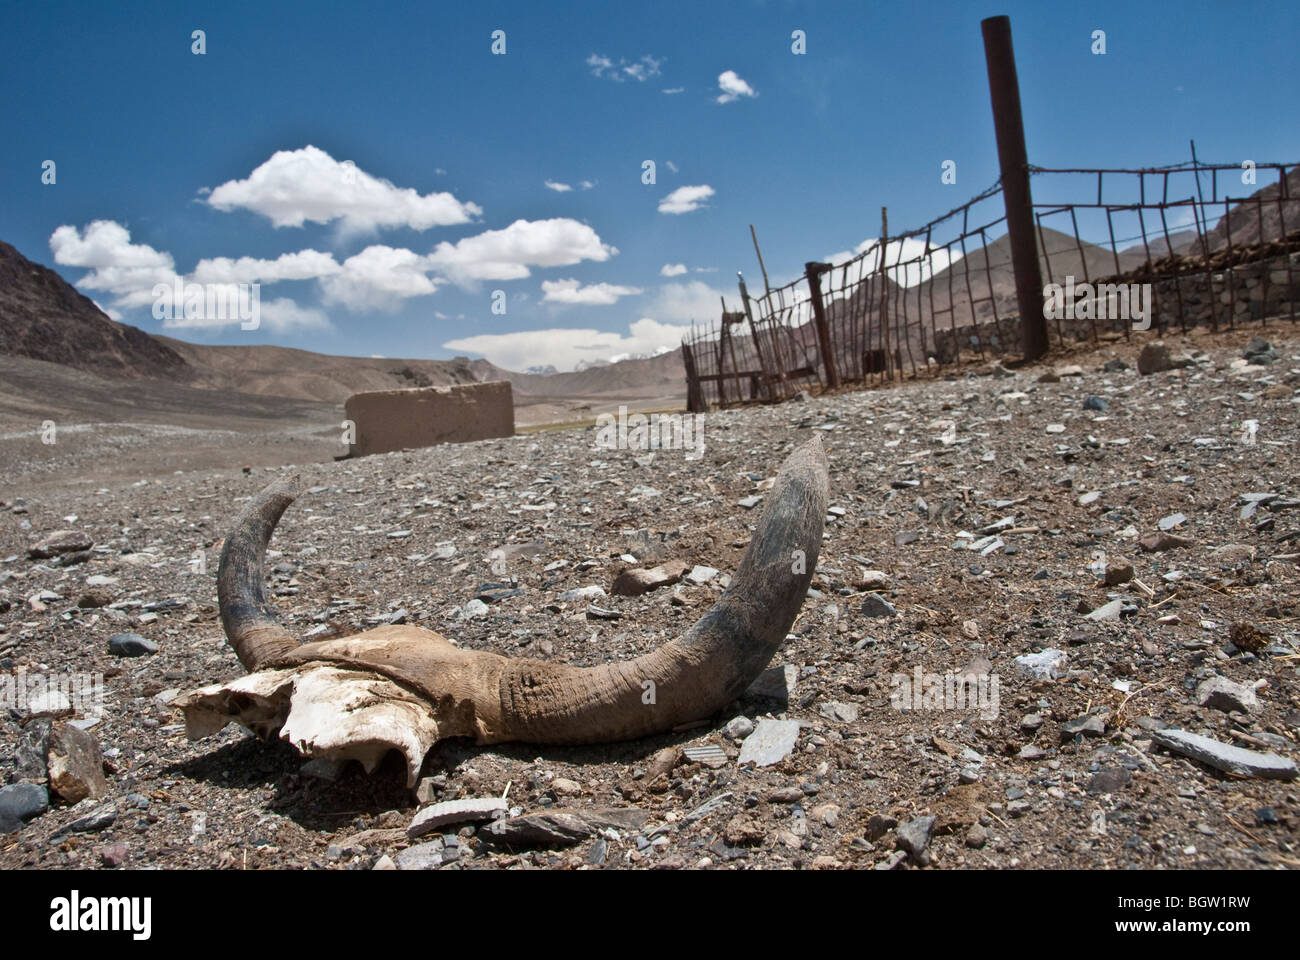 View of the remains of an animal skull in the Pamir Highway Plateau near Murgab, Tajikistan - Stock Image